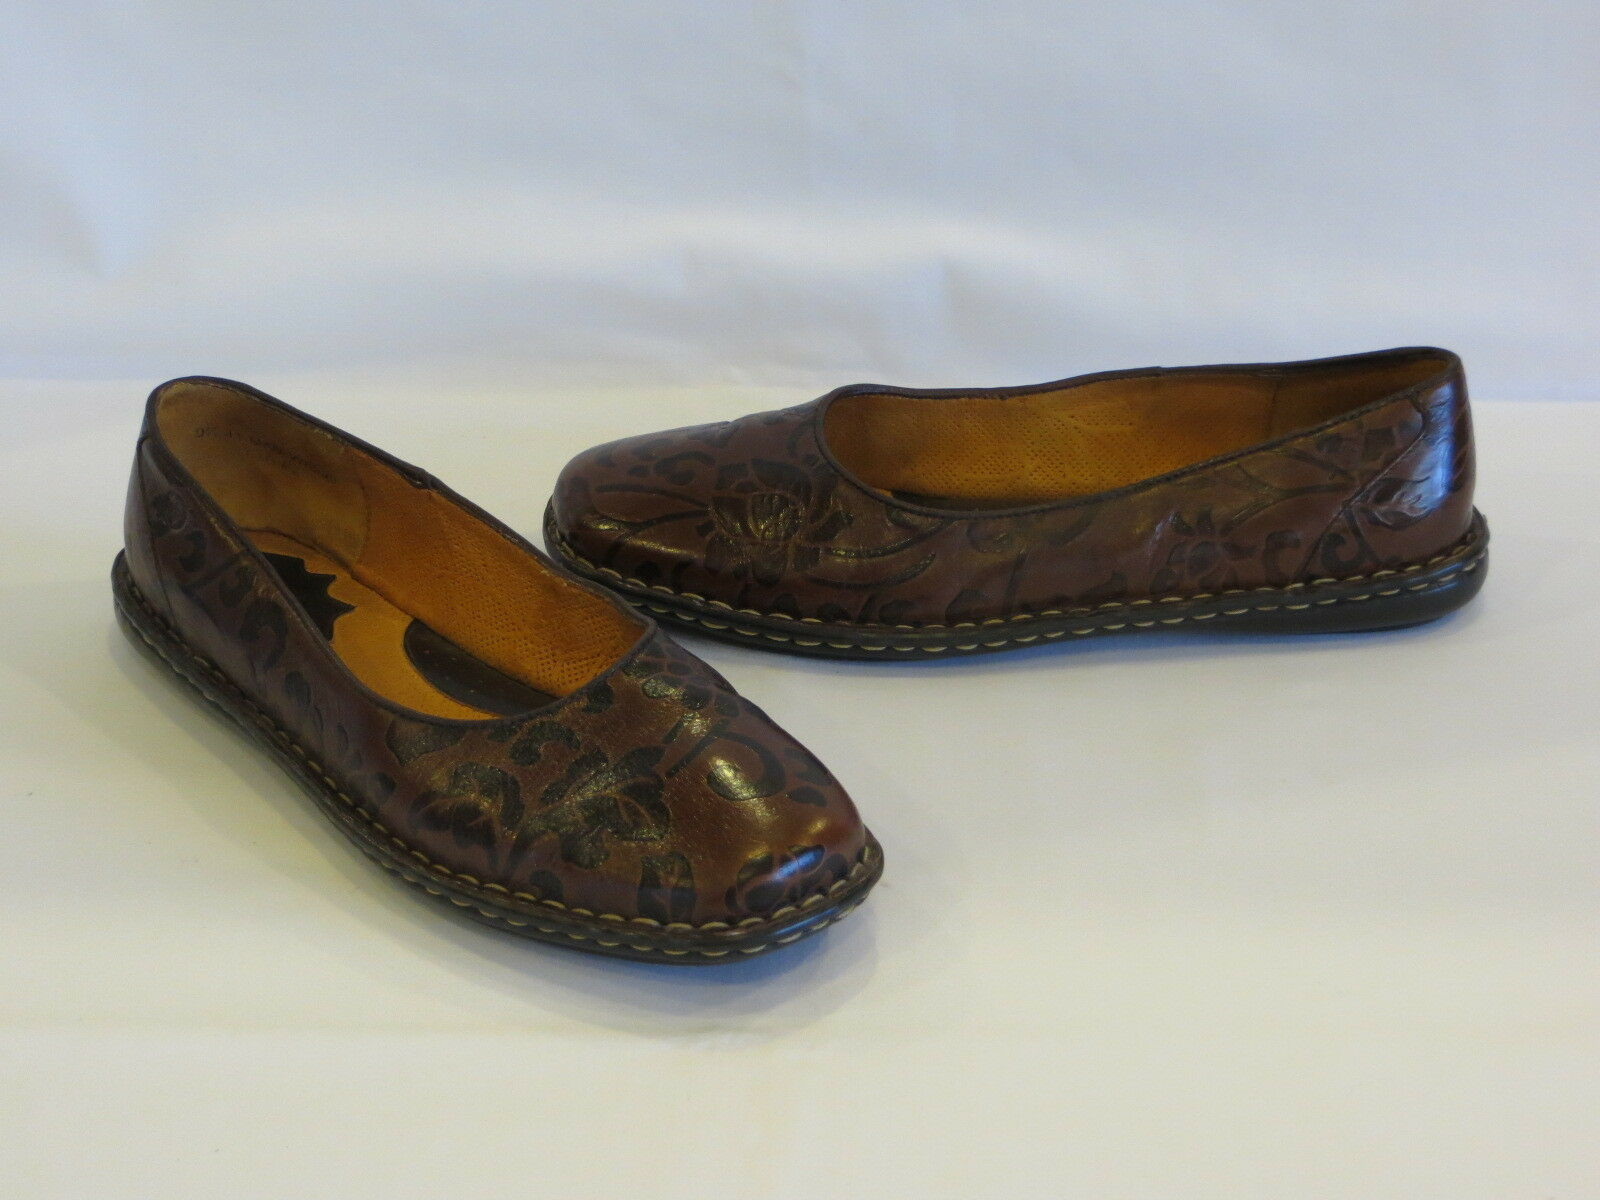 BORN 2 Tone Brown Leather Textured Floral Flats - 9.5M W - GR8